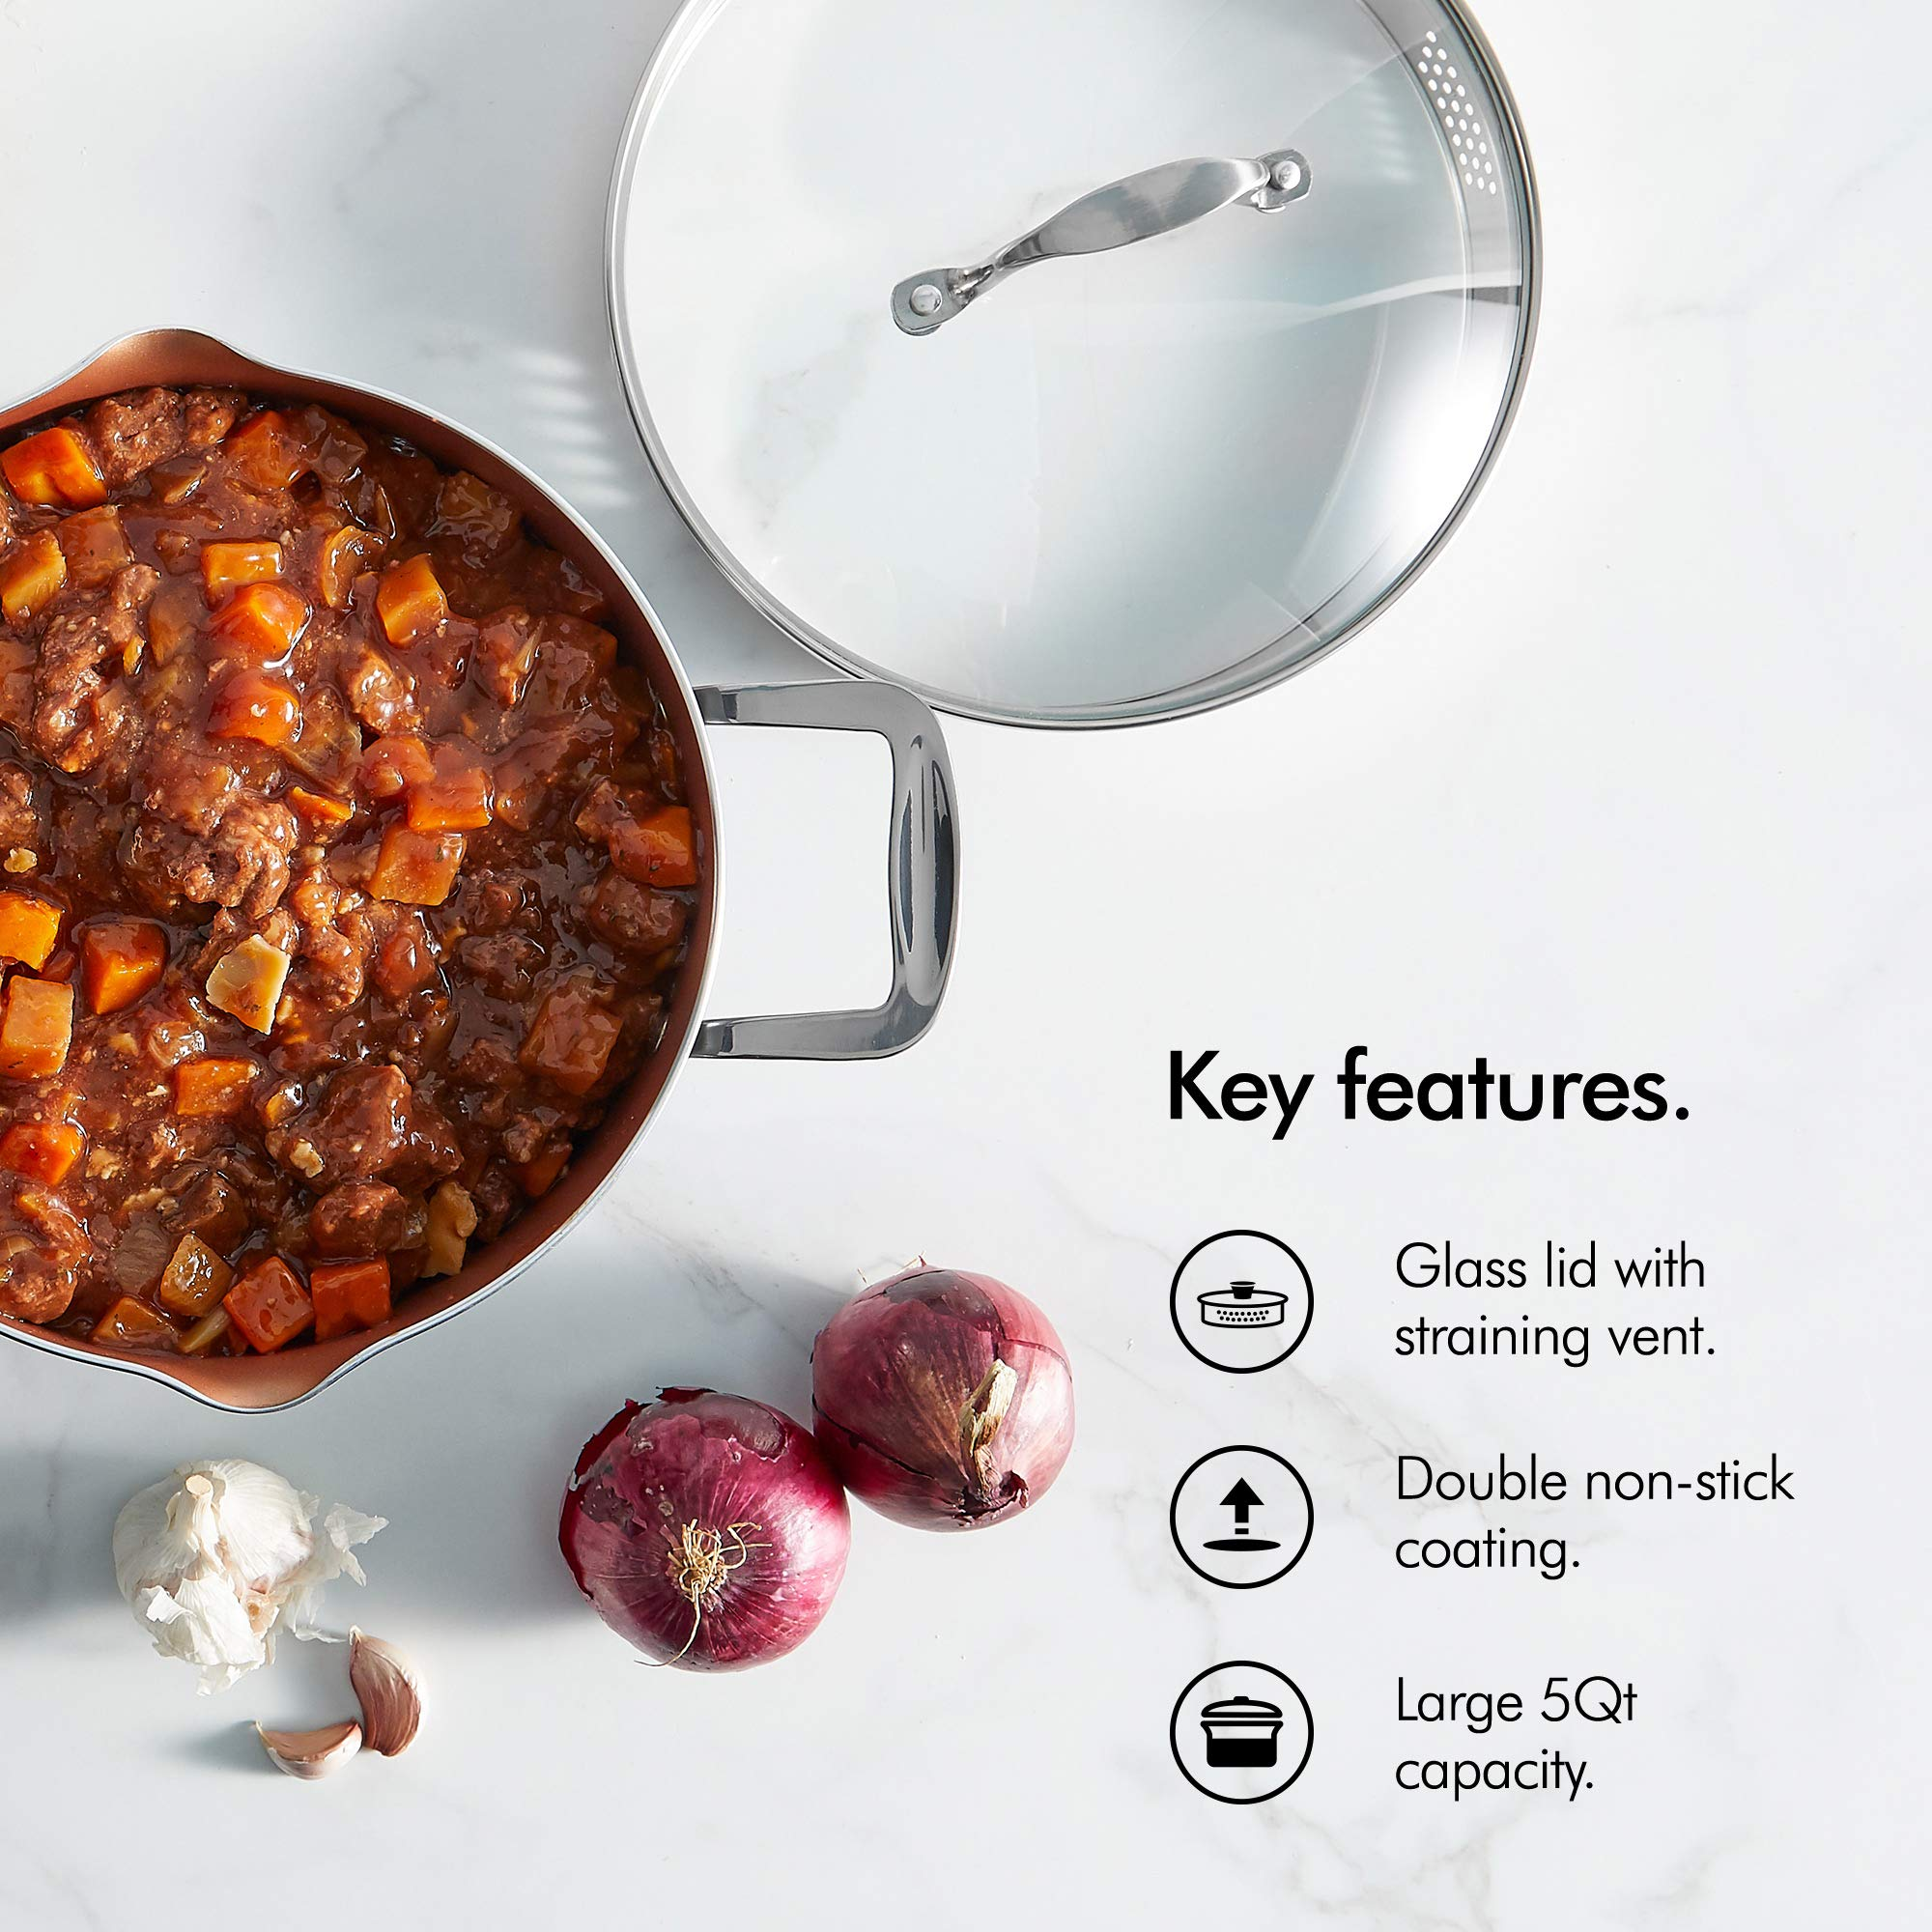 VonShef Casserole and Pasta Multi Pot with Strainer Lid, Easy Clean, Non-Stick Copper-Colored Interior, Stainless Steel Handles and Tempered Glass Lid, Induction Hob Ready, Copper, 5 Quart Capacity by VonShef (Image #3)